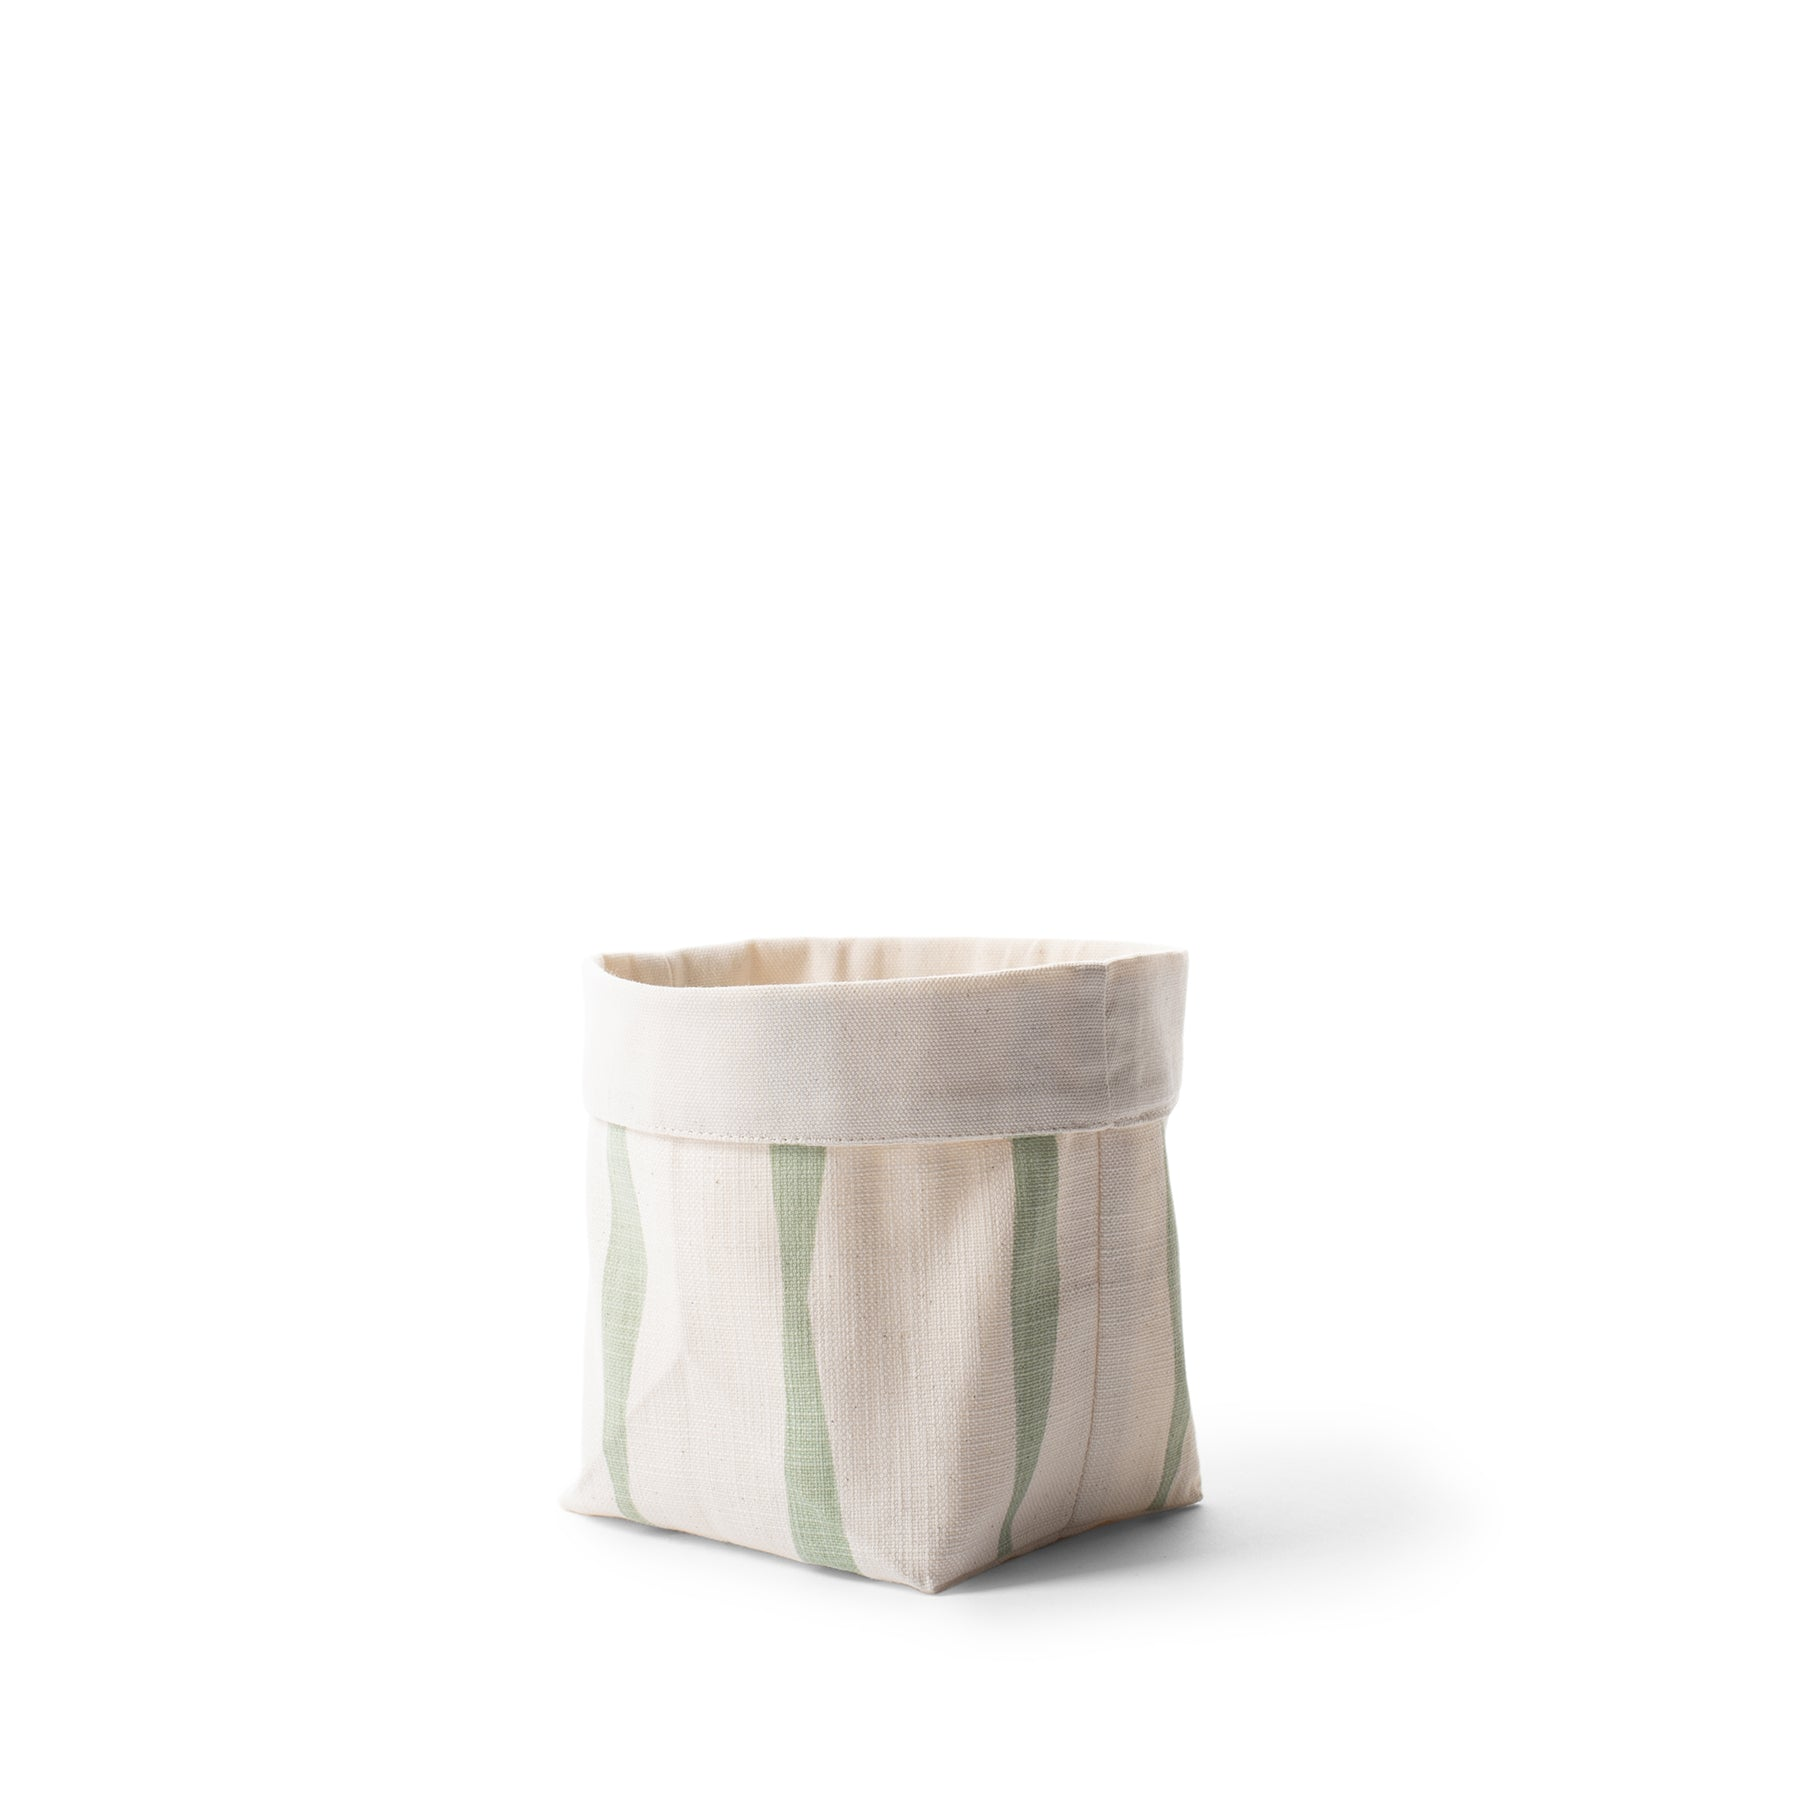 Small Brancusi Soft Bucket in Spruce Zoom Image 1